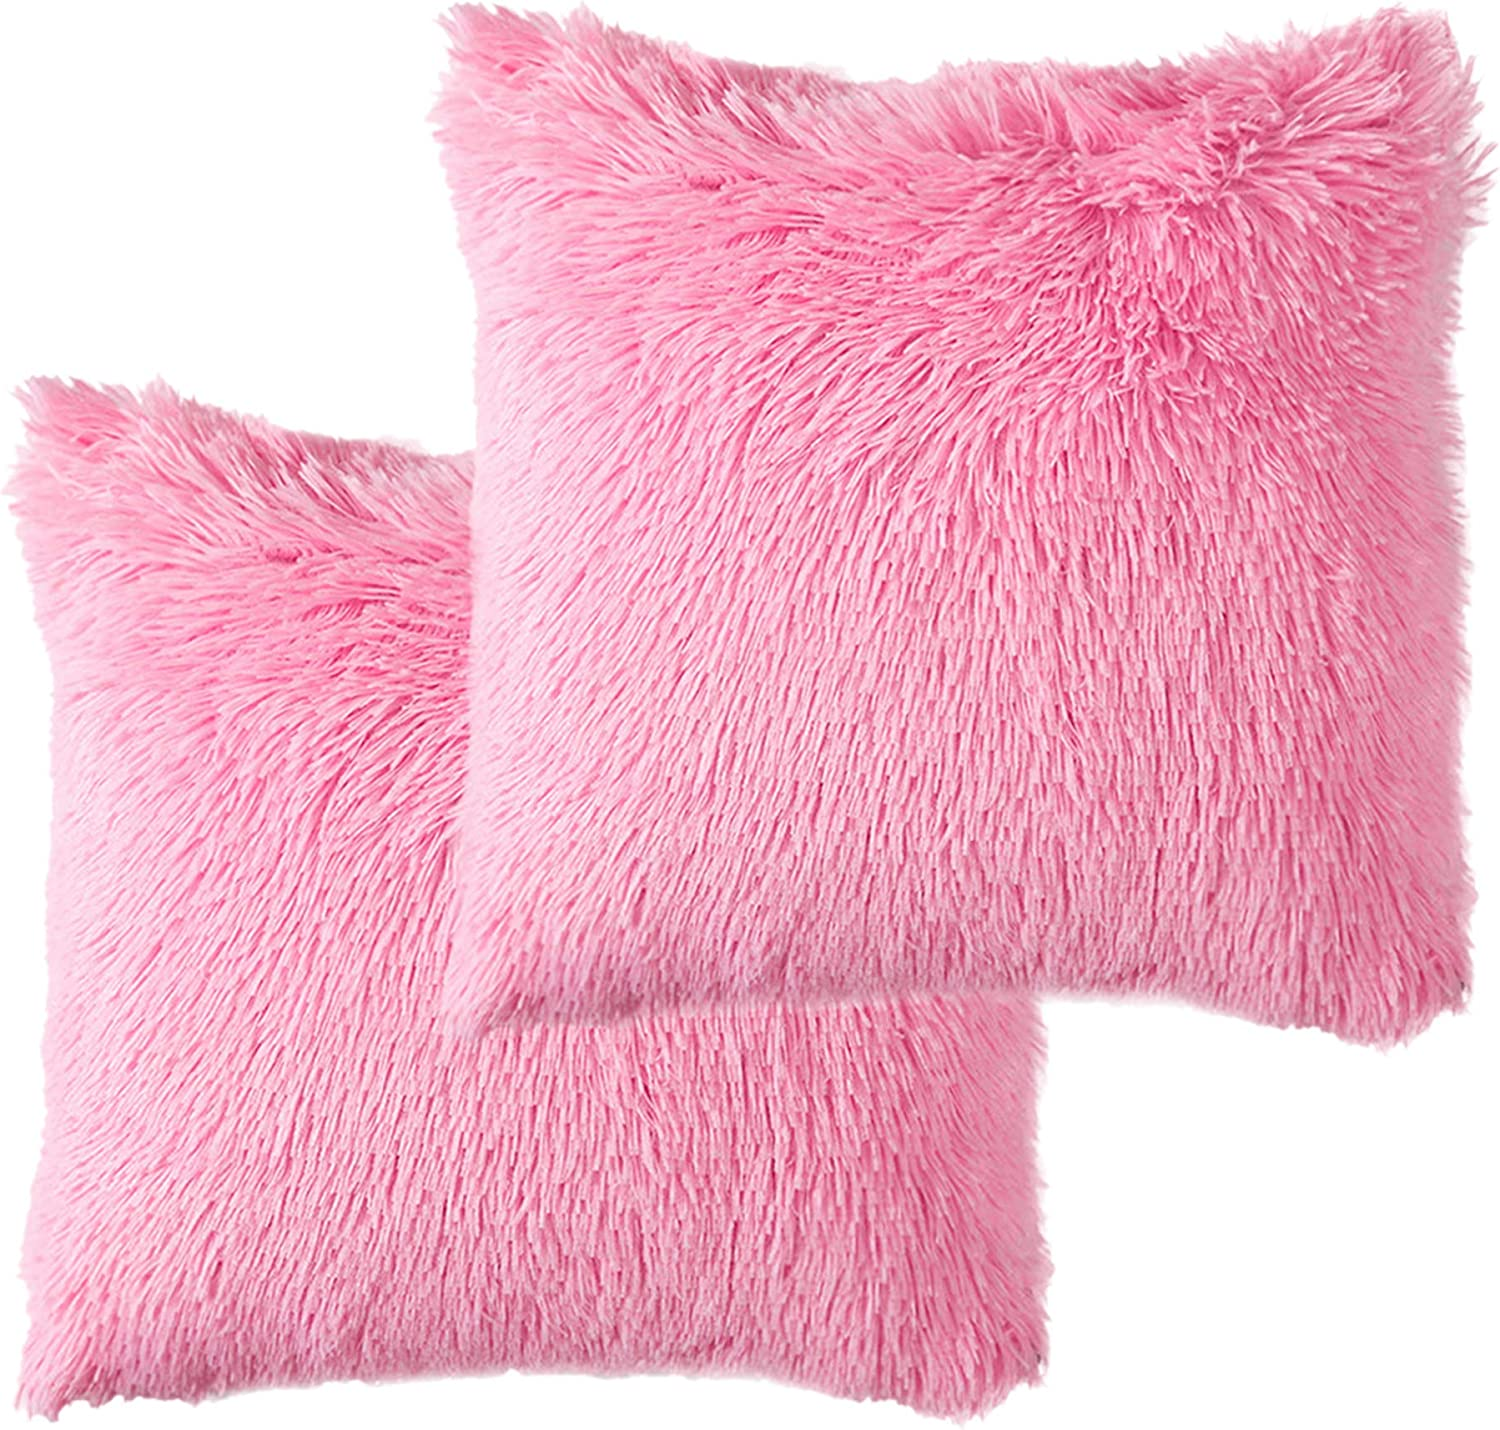 HEYDOO Fluffy Throw Pillow Covers 16 Inch Faux Fur Cushion Cover Square Decorative Shag Pillow Case for Sofa Bed Car Couch Office Home Decor Set of 2 (Pink)